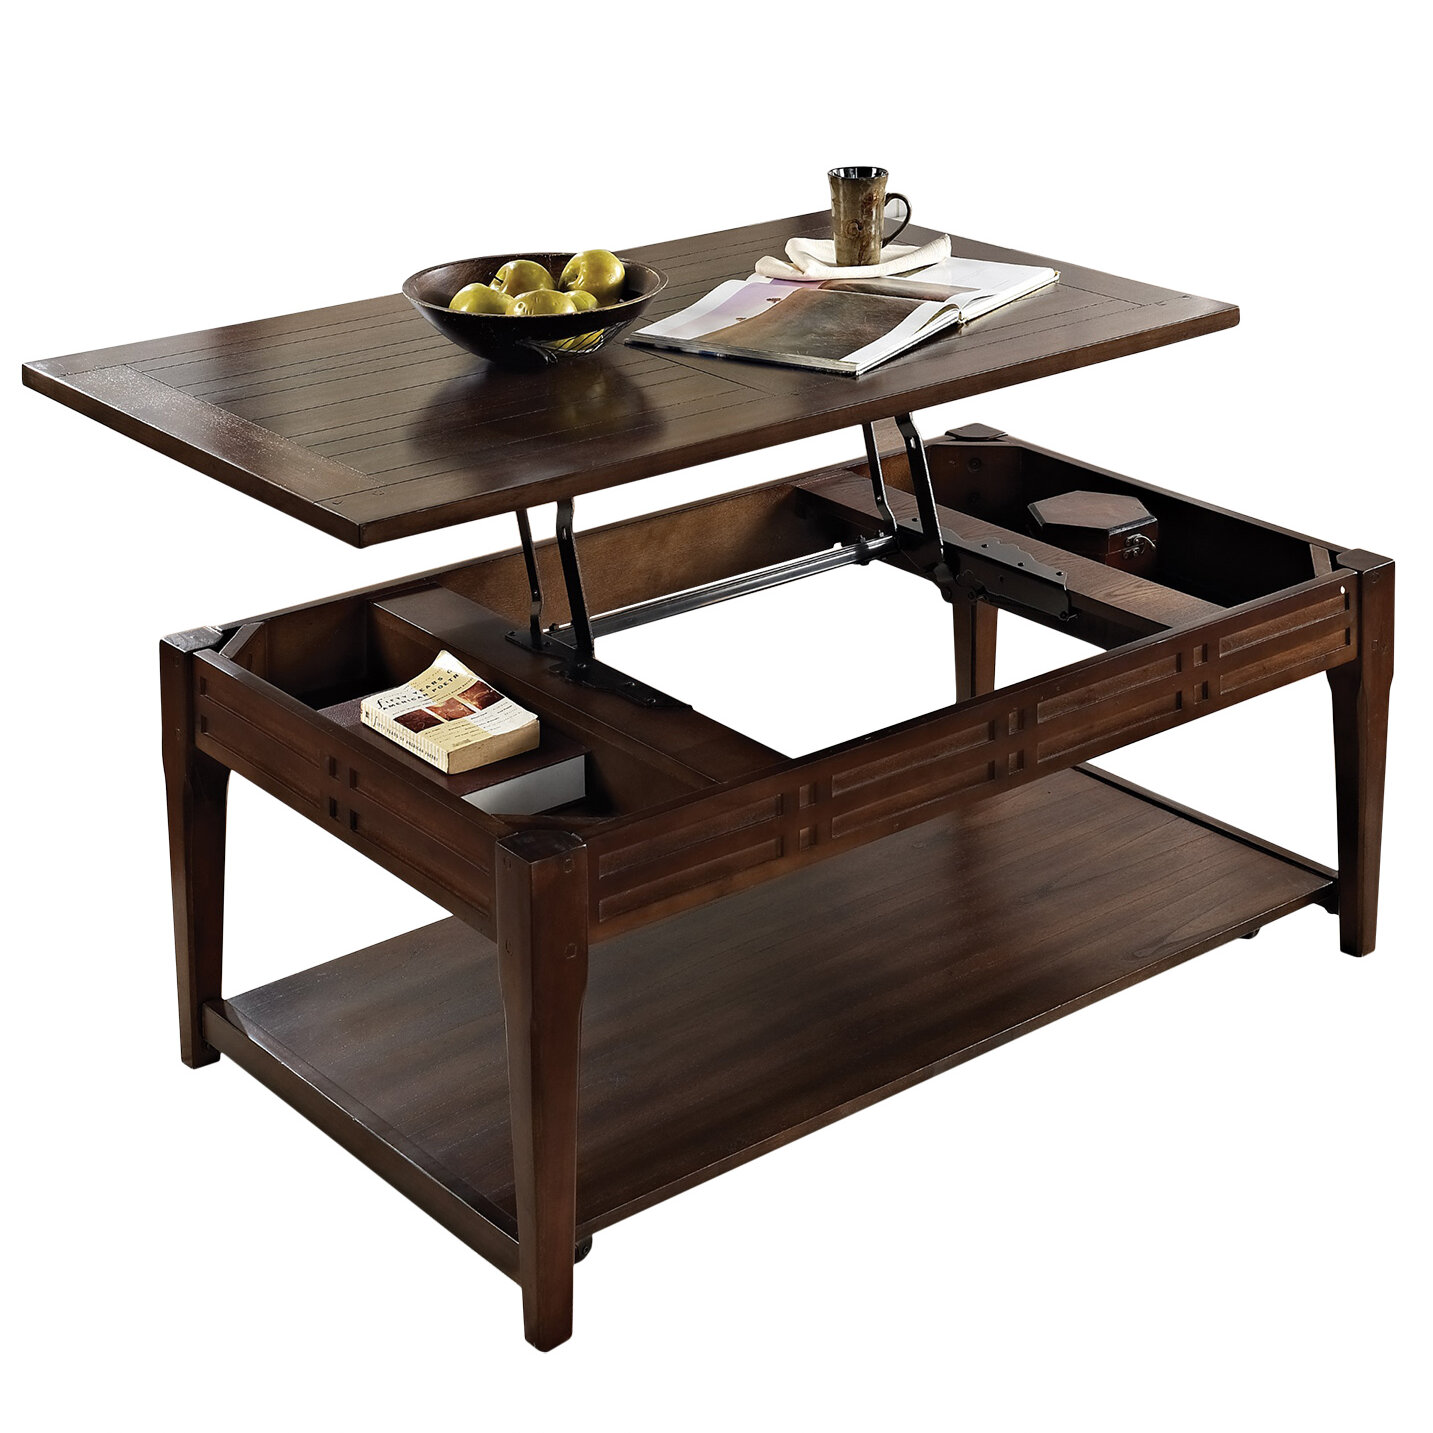 taffette coffee plans lift sebring top space table extra double with designs modern